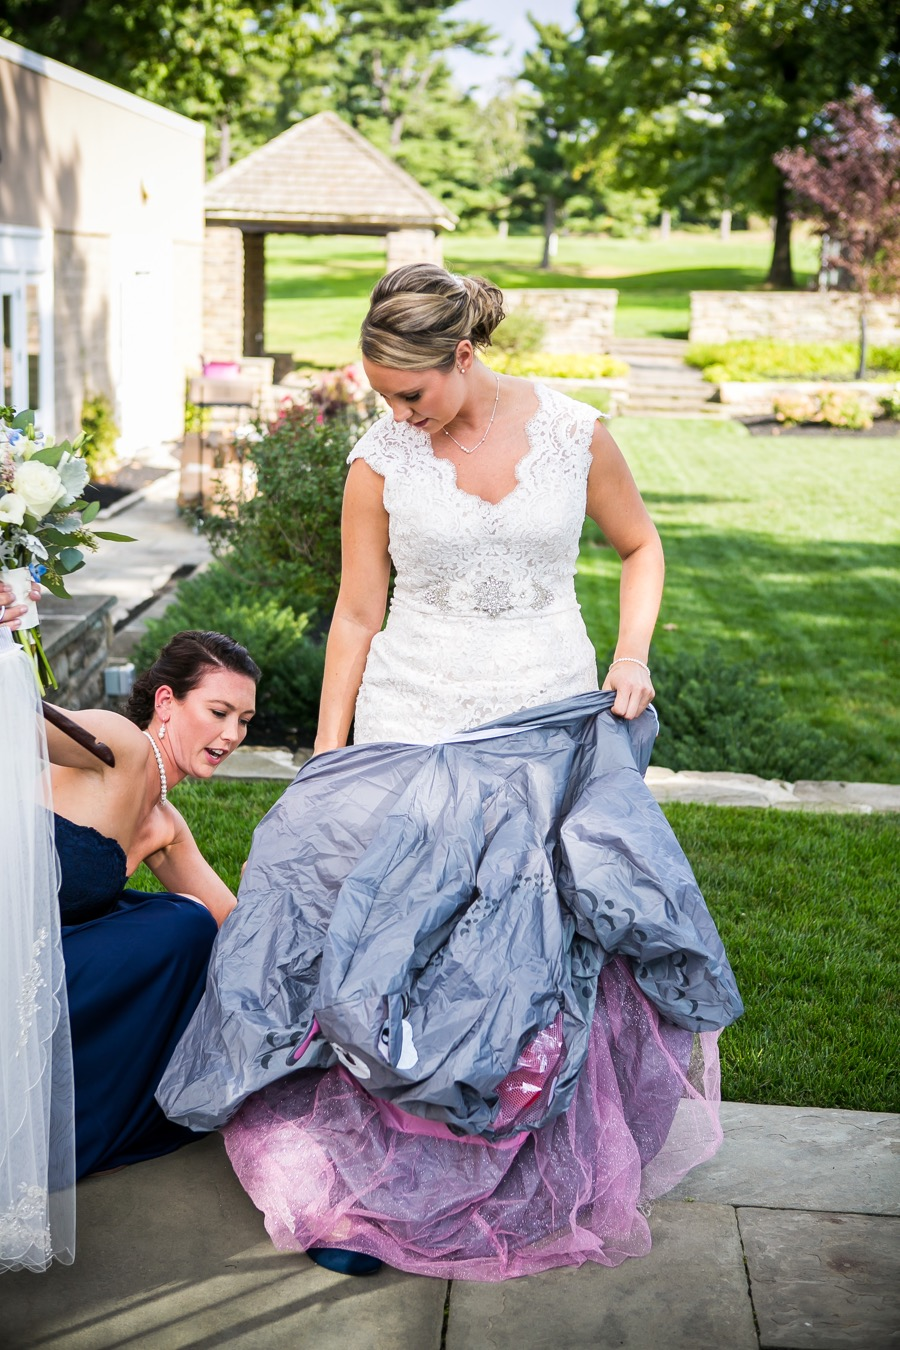 This bride hilariously pranked her groom by wearing a hippo costume philadelphia wedding you got your hair and makeup done just before putting on the costume were you worried about overheating and messing up your look junglespirit Gallery